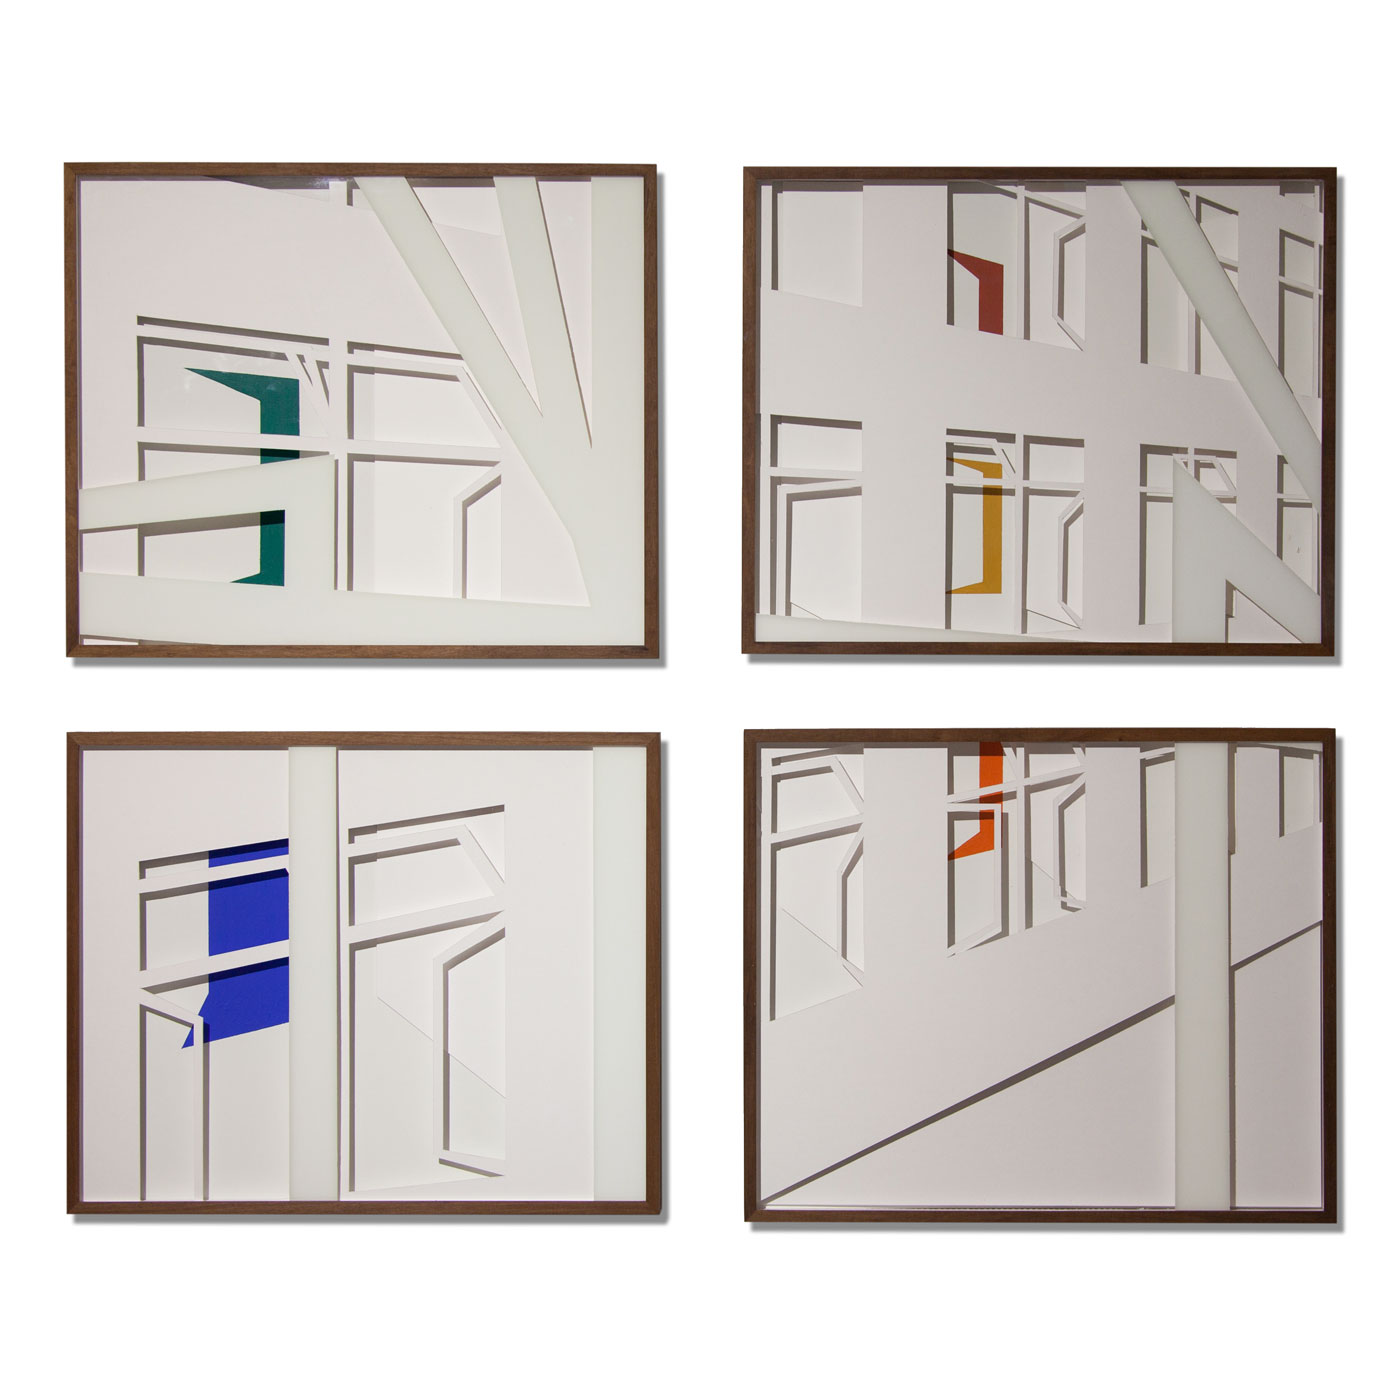 VASISTATS I-IV, © 2015, cardboard and acrylic paint behind glass, each 64 x 53 x 4.5 cm